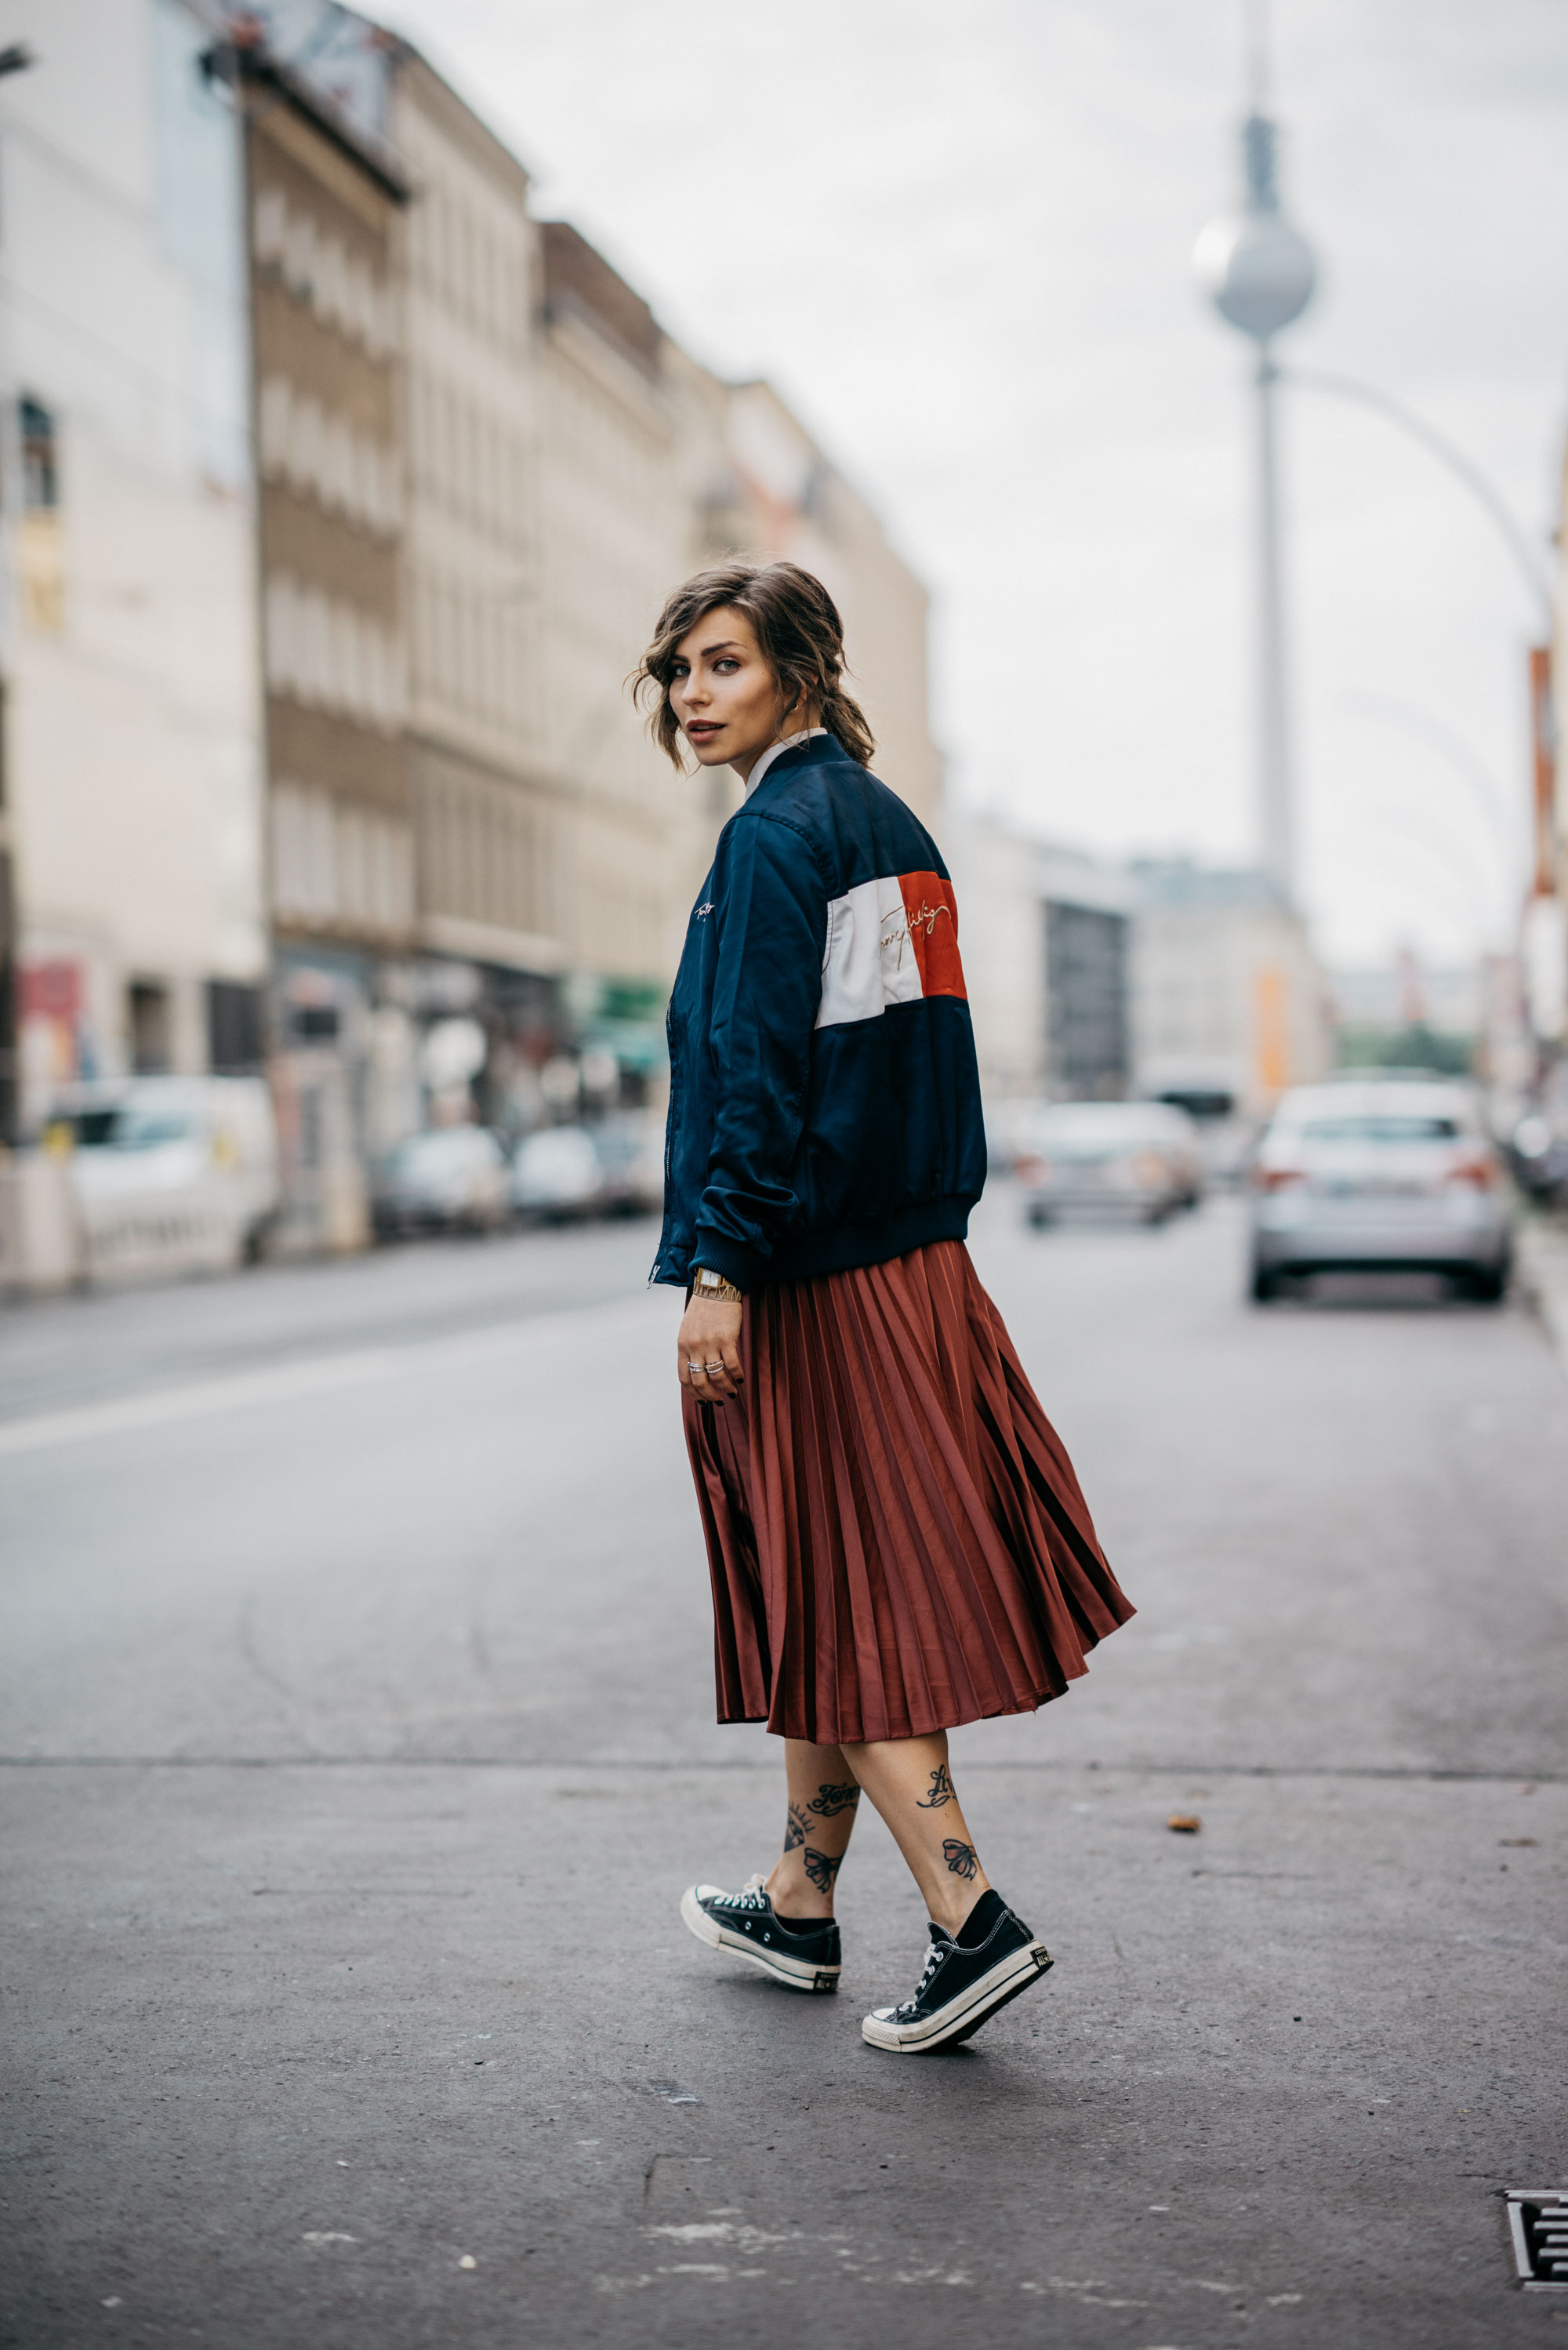 one of my daily outfits | midi skirt, chucks & bomber jacket from Tommy Hilfiger